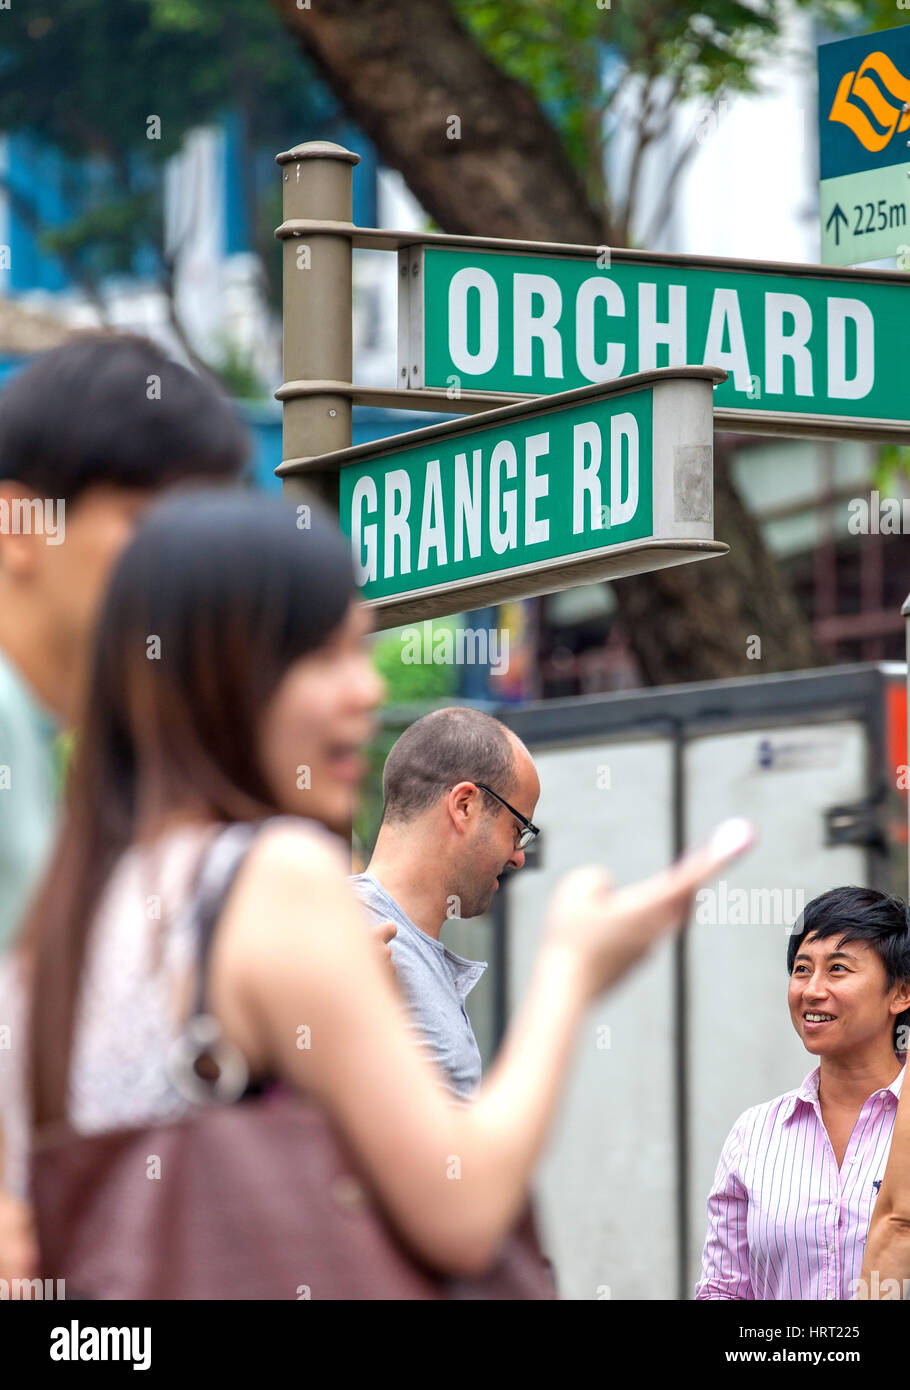 Main road, shopping street Orchard Road, Grange Road, road signs, pedestrians, Singapore, Asia, Singapore - Stock Image